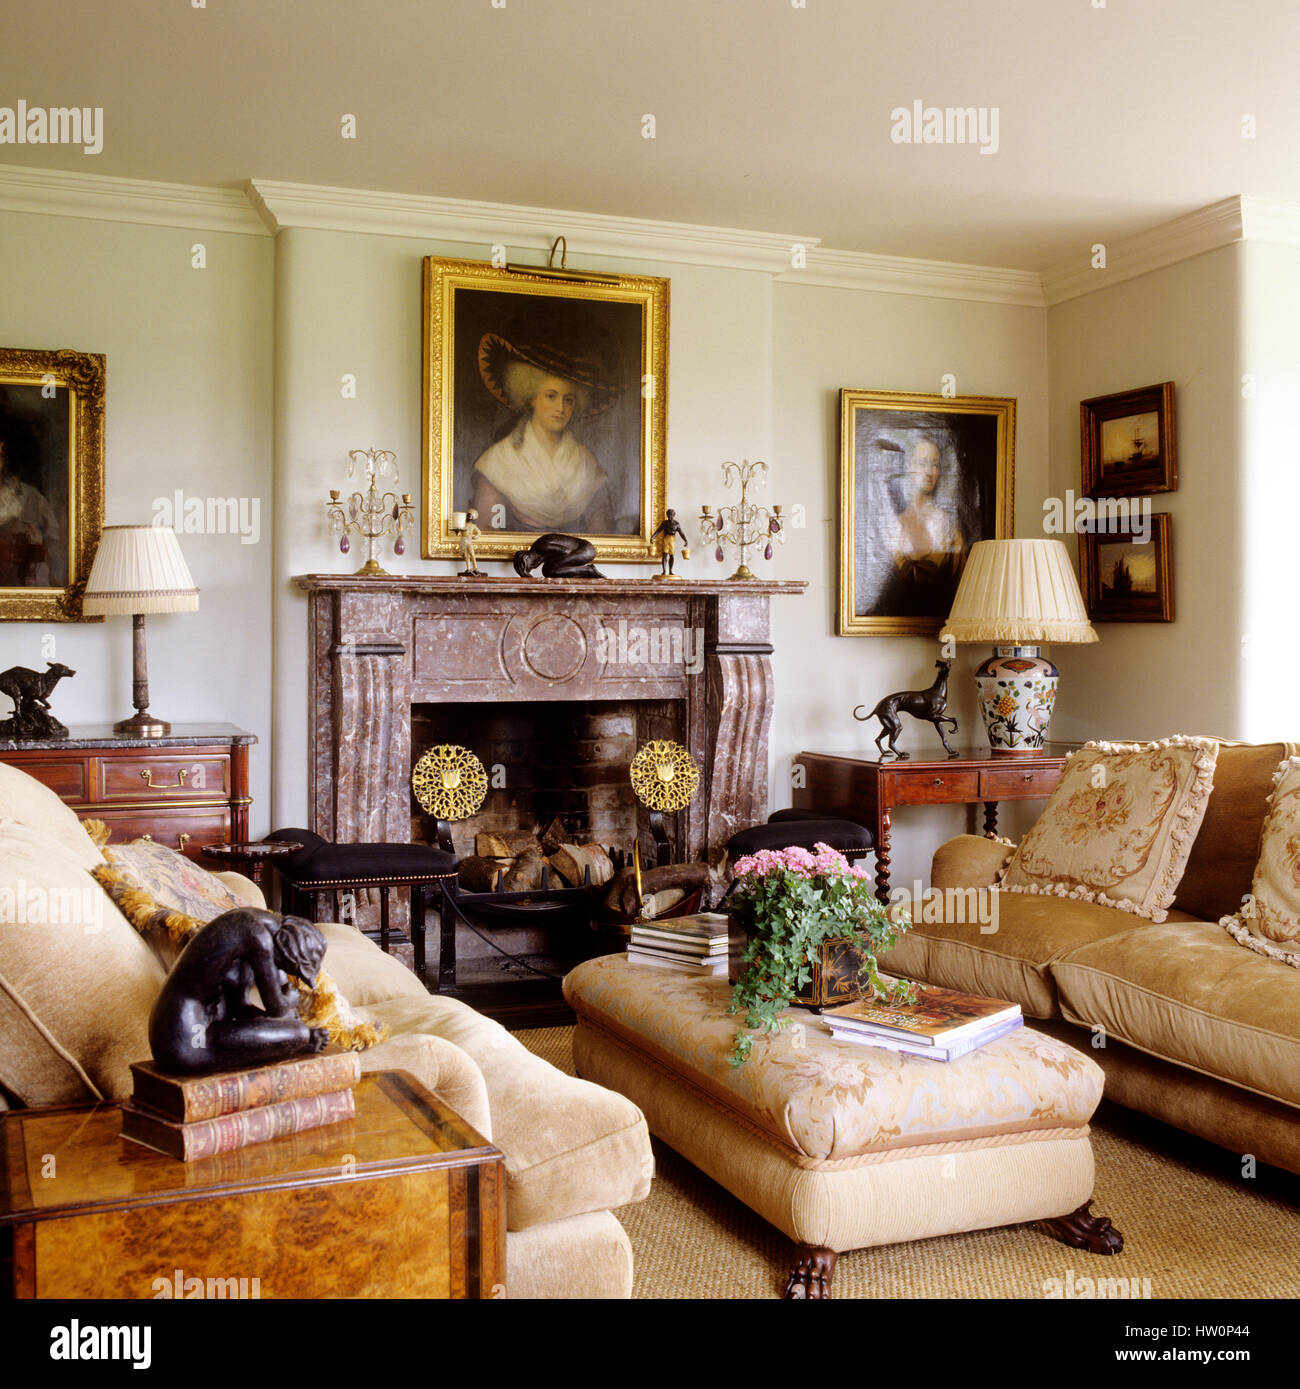 Georgian style living room Stock Photo Royalty Free Image